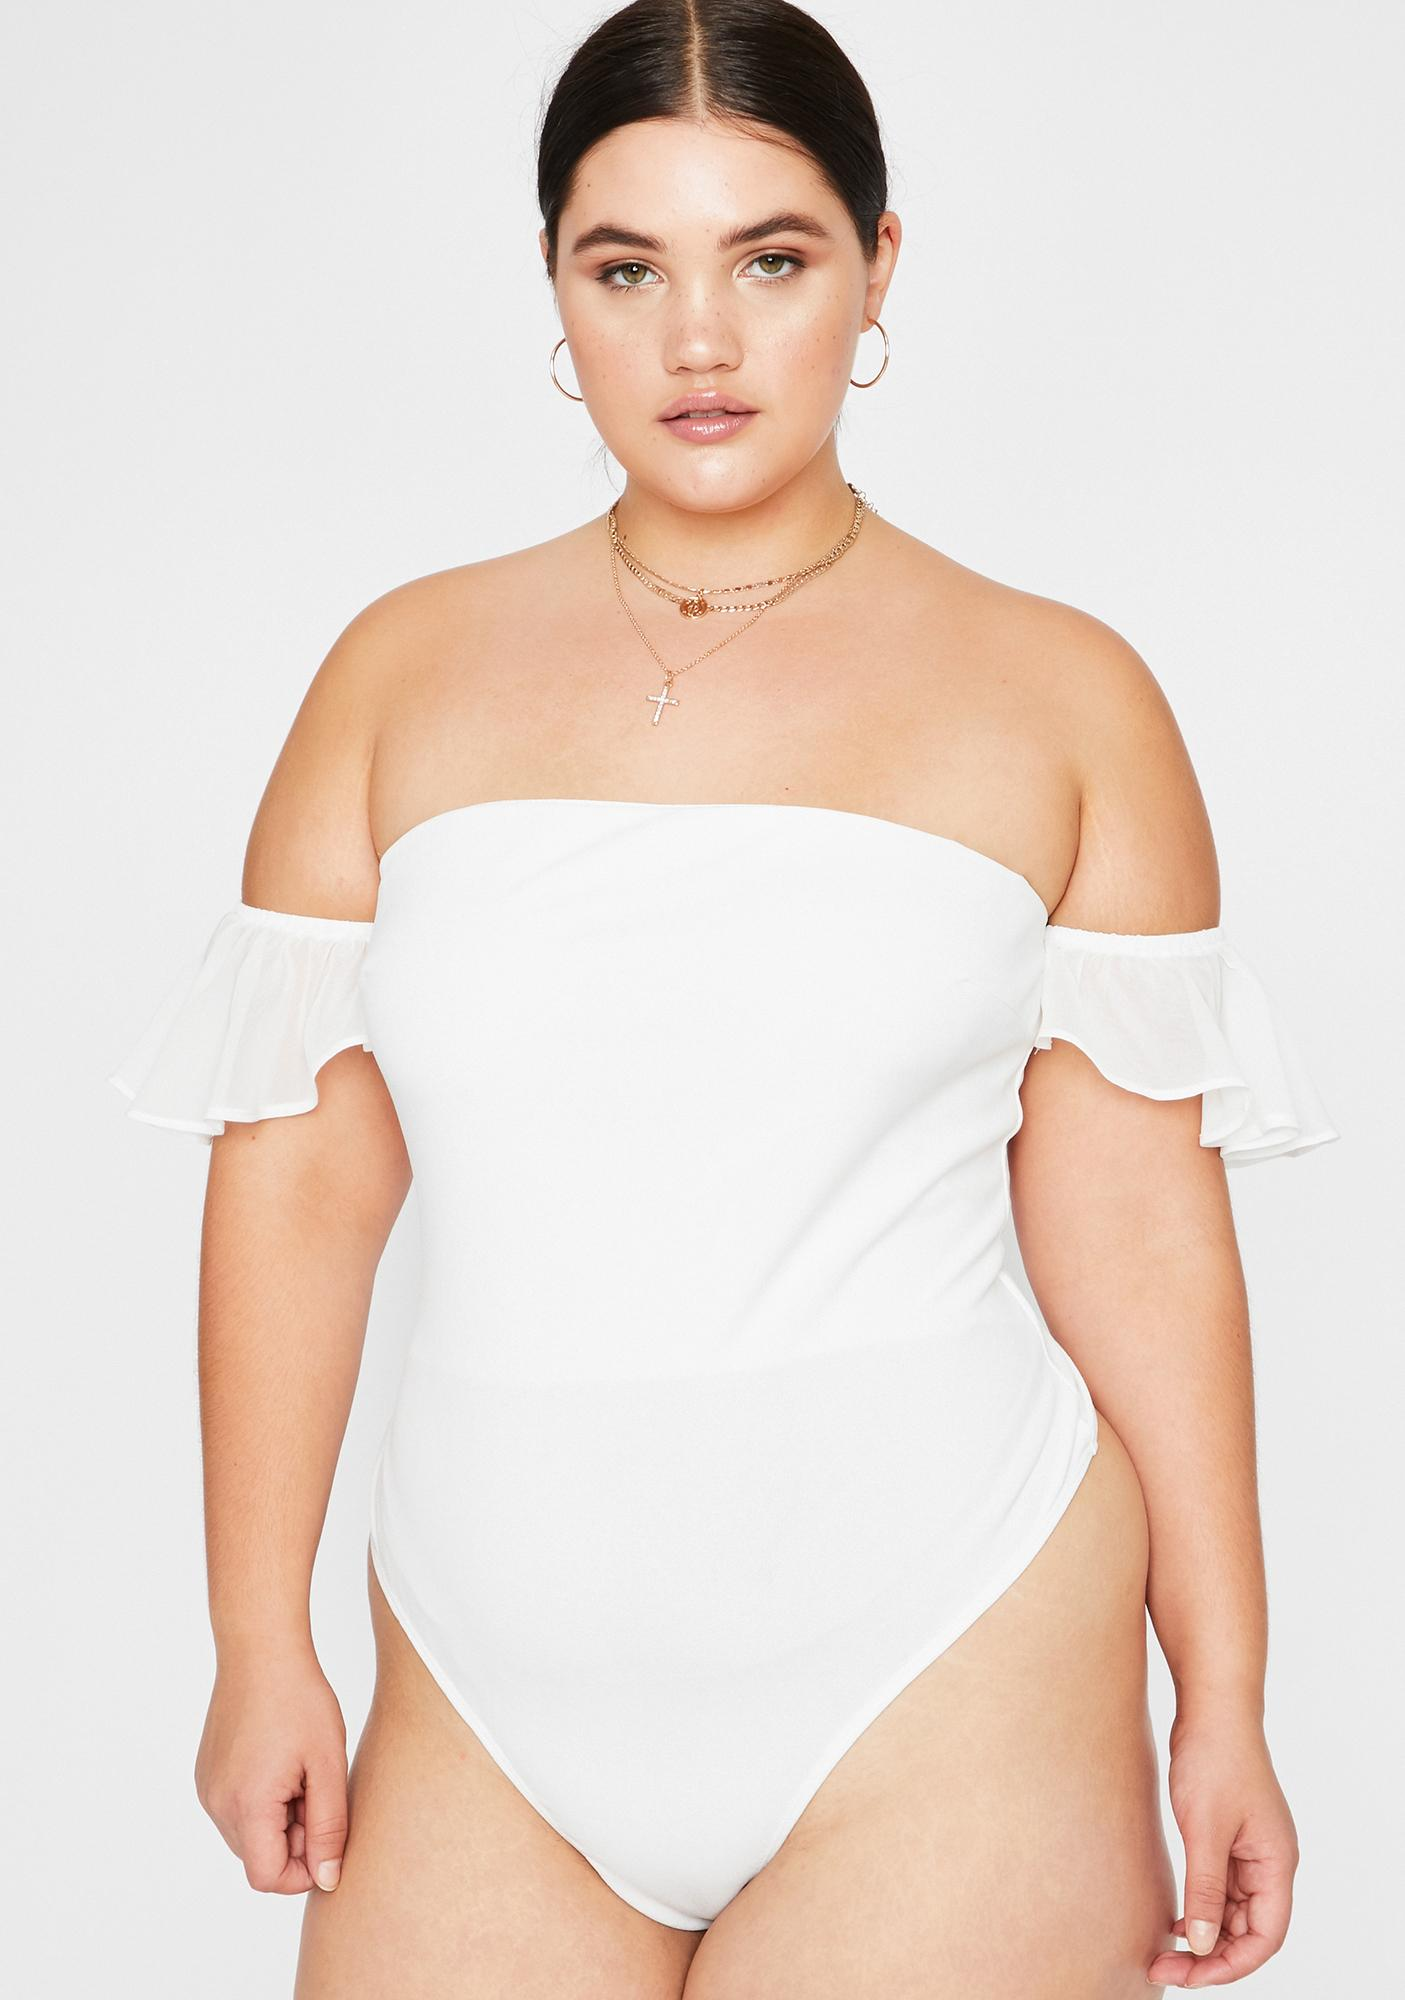 Purely Got Simple Luv Strapless Bodysuit